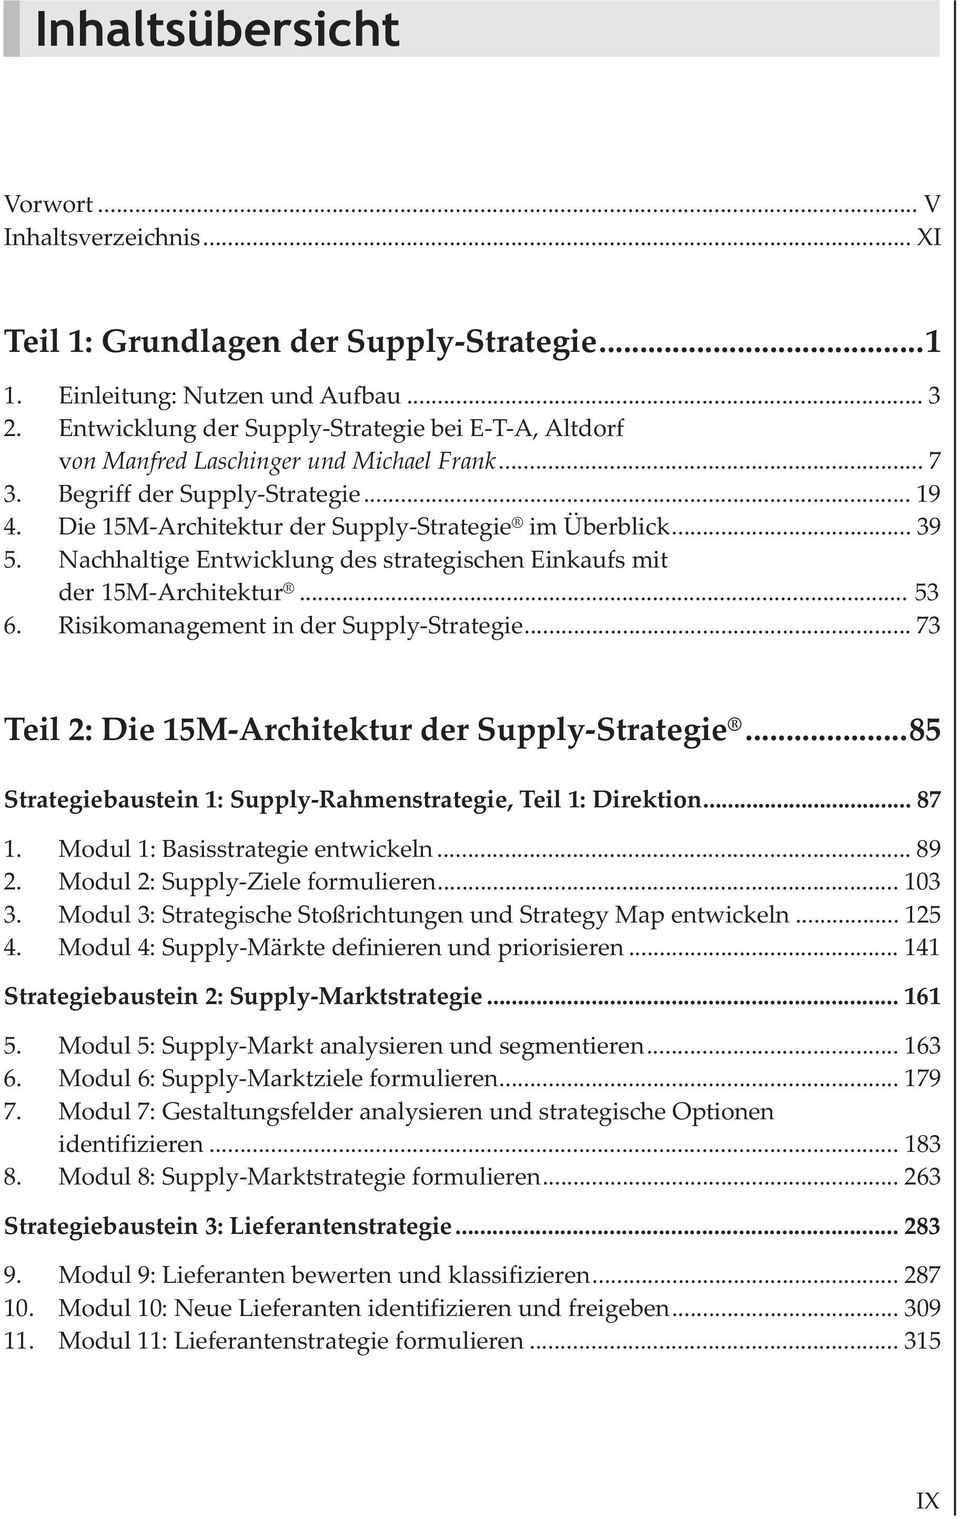 Nachhaltige Entwicklung des strategischen Einkaufs mit der 15M-Architektur... 53 6. Risikomanagement in der Supply-Strategie... 73 Teil 2: Die 15M-Architektur der Supply-Strategie.